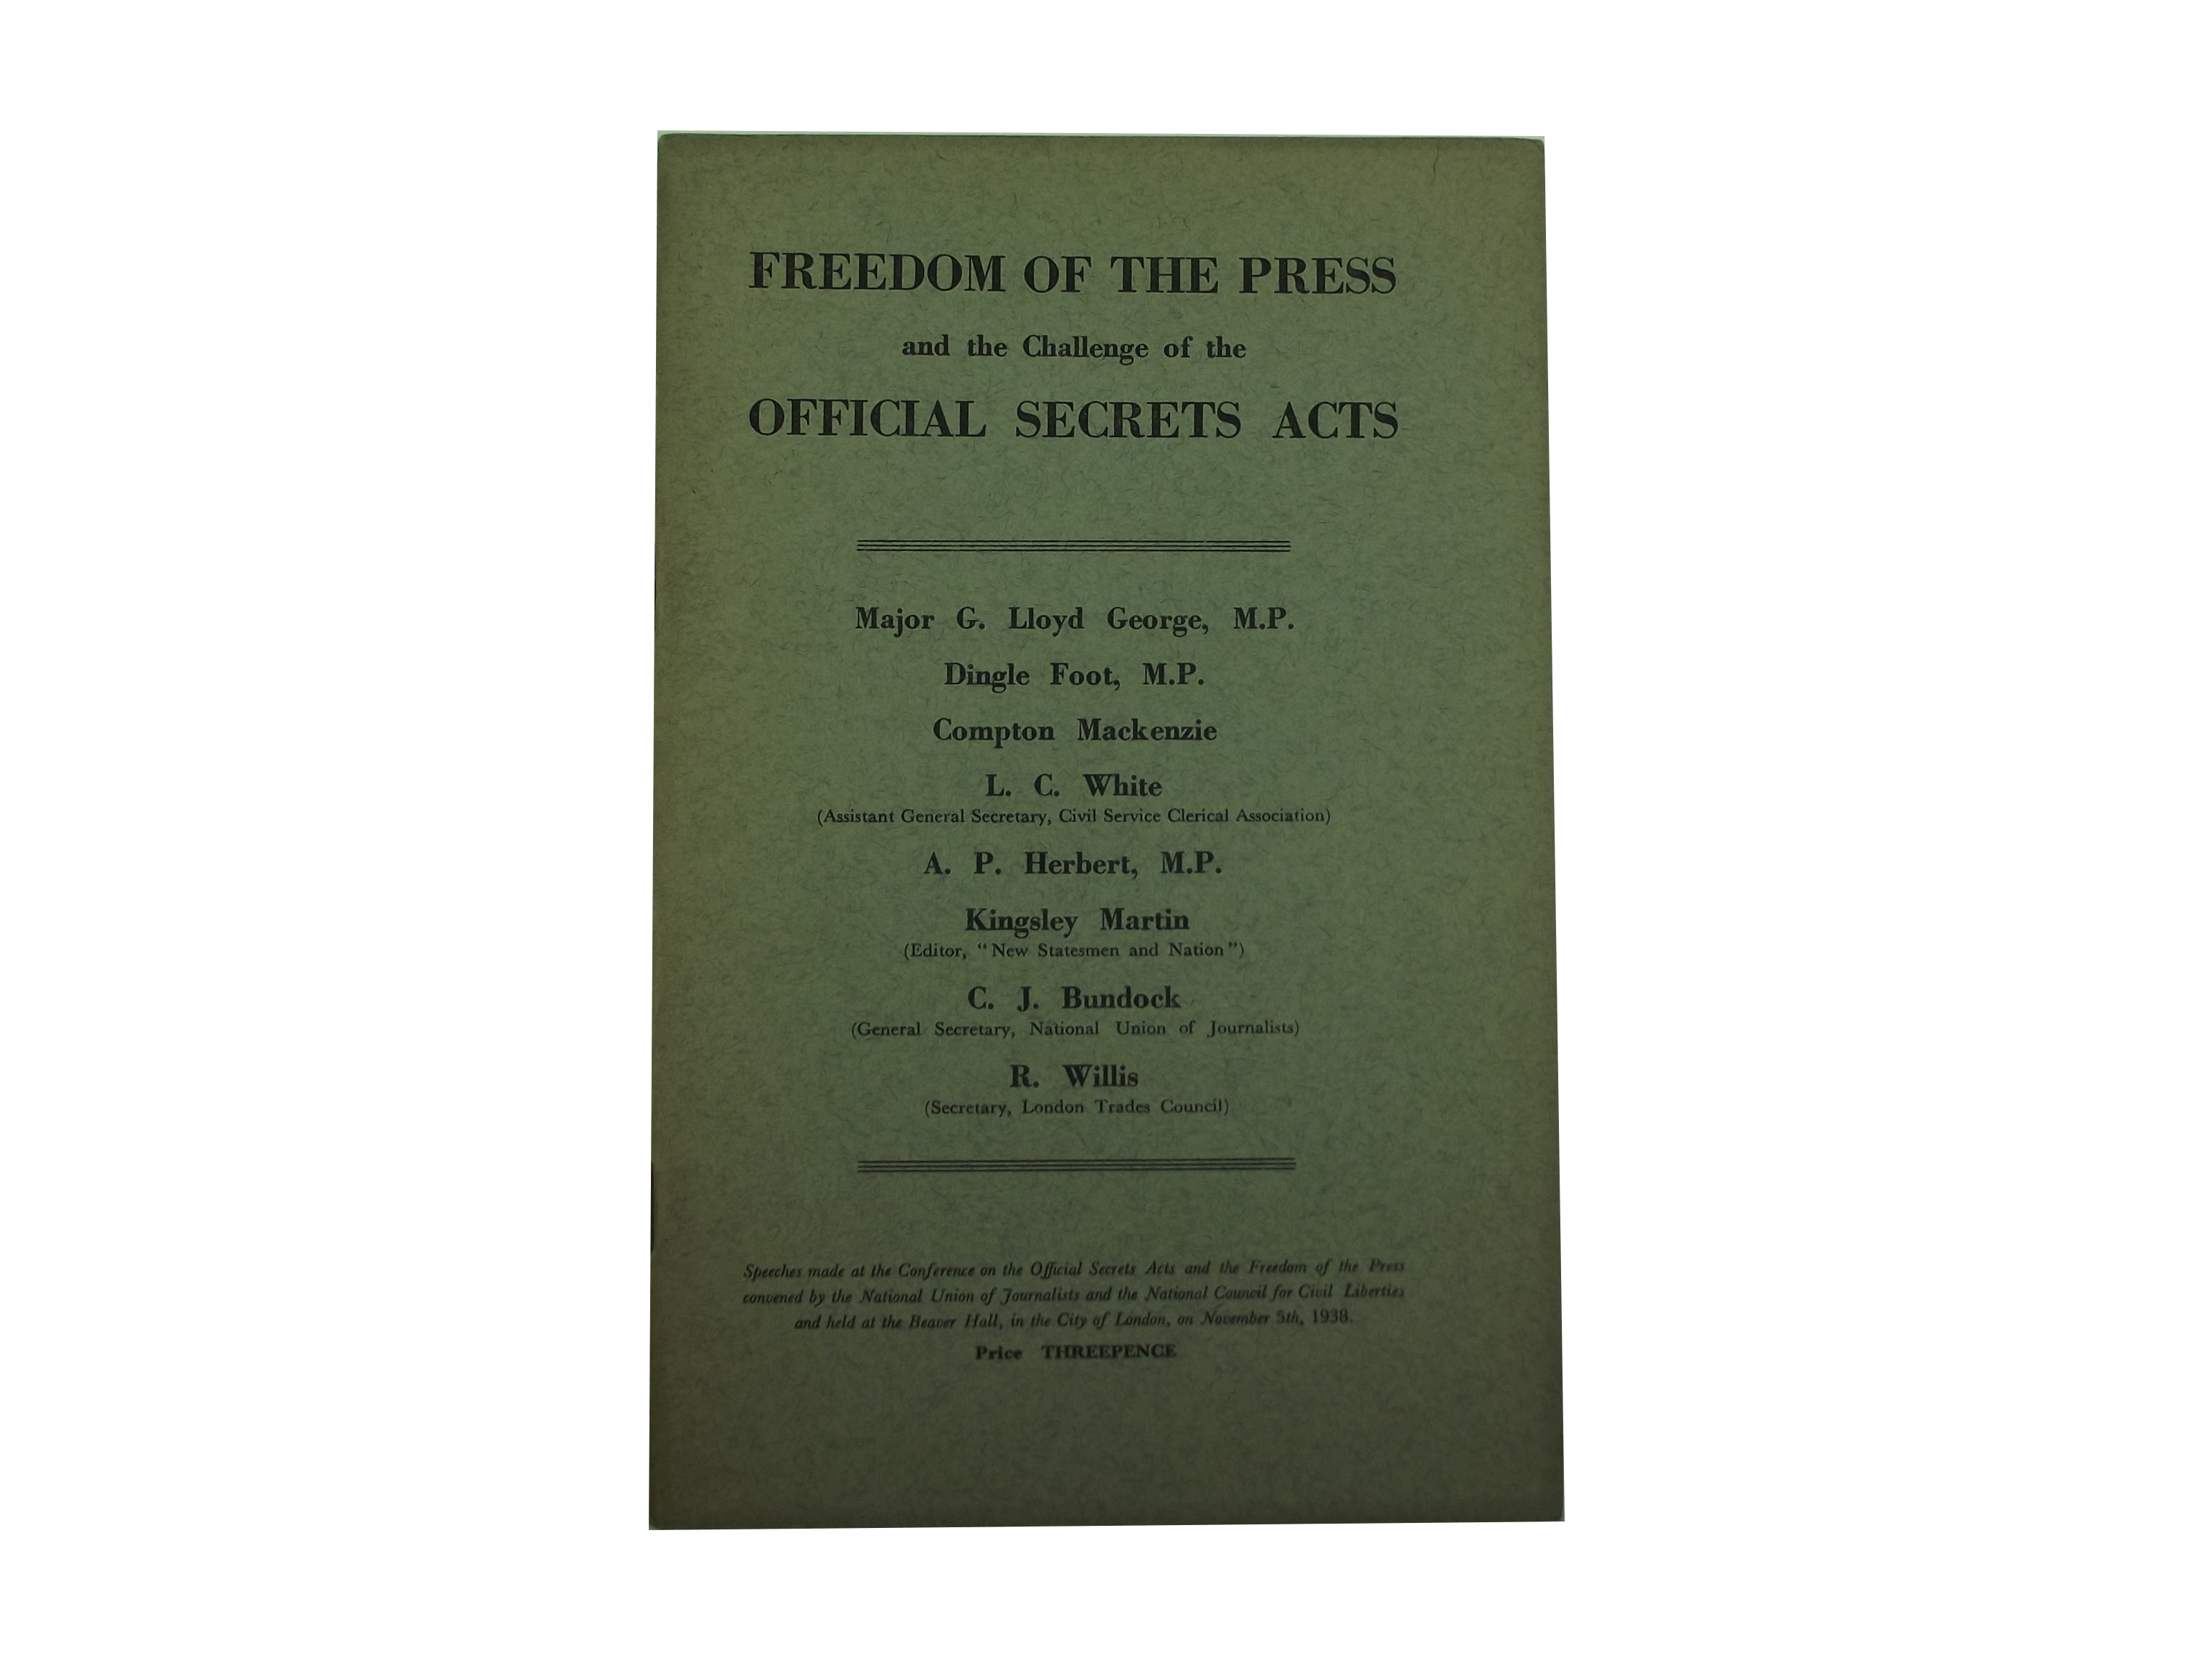 Freedom of the press and Official Secrets acts pamphlet